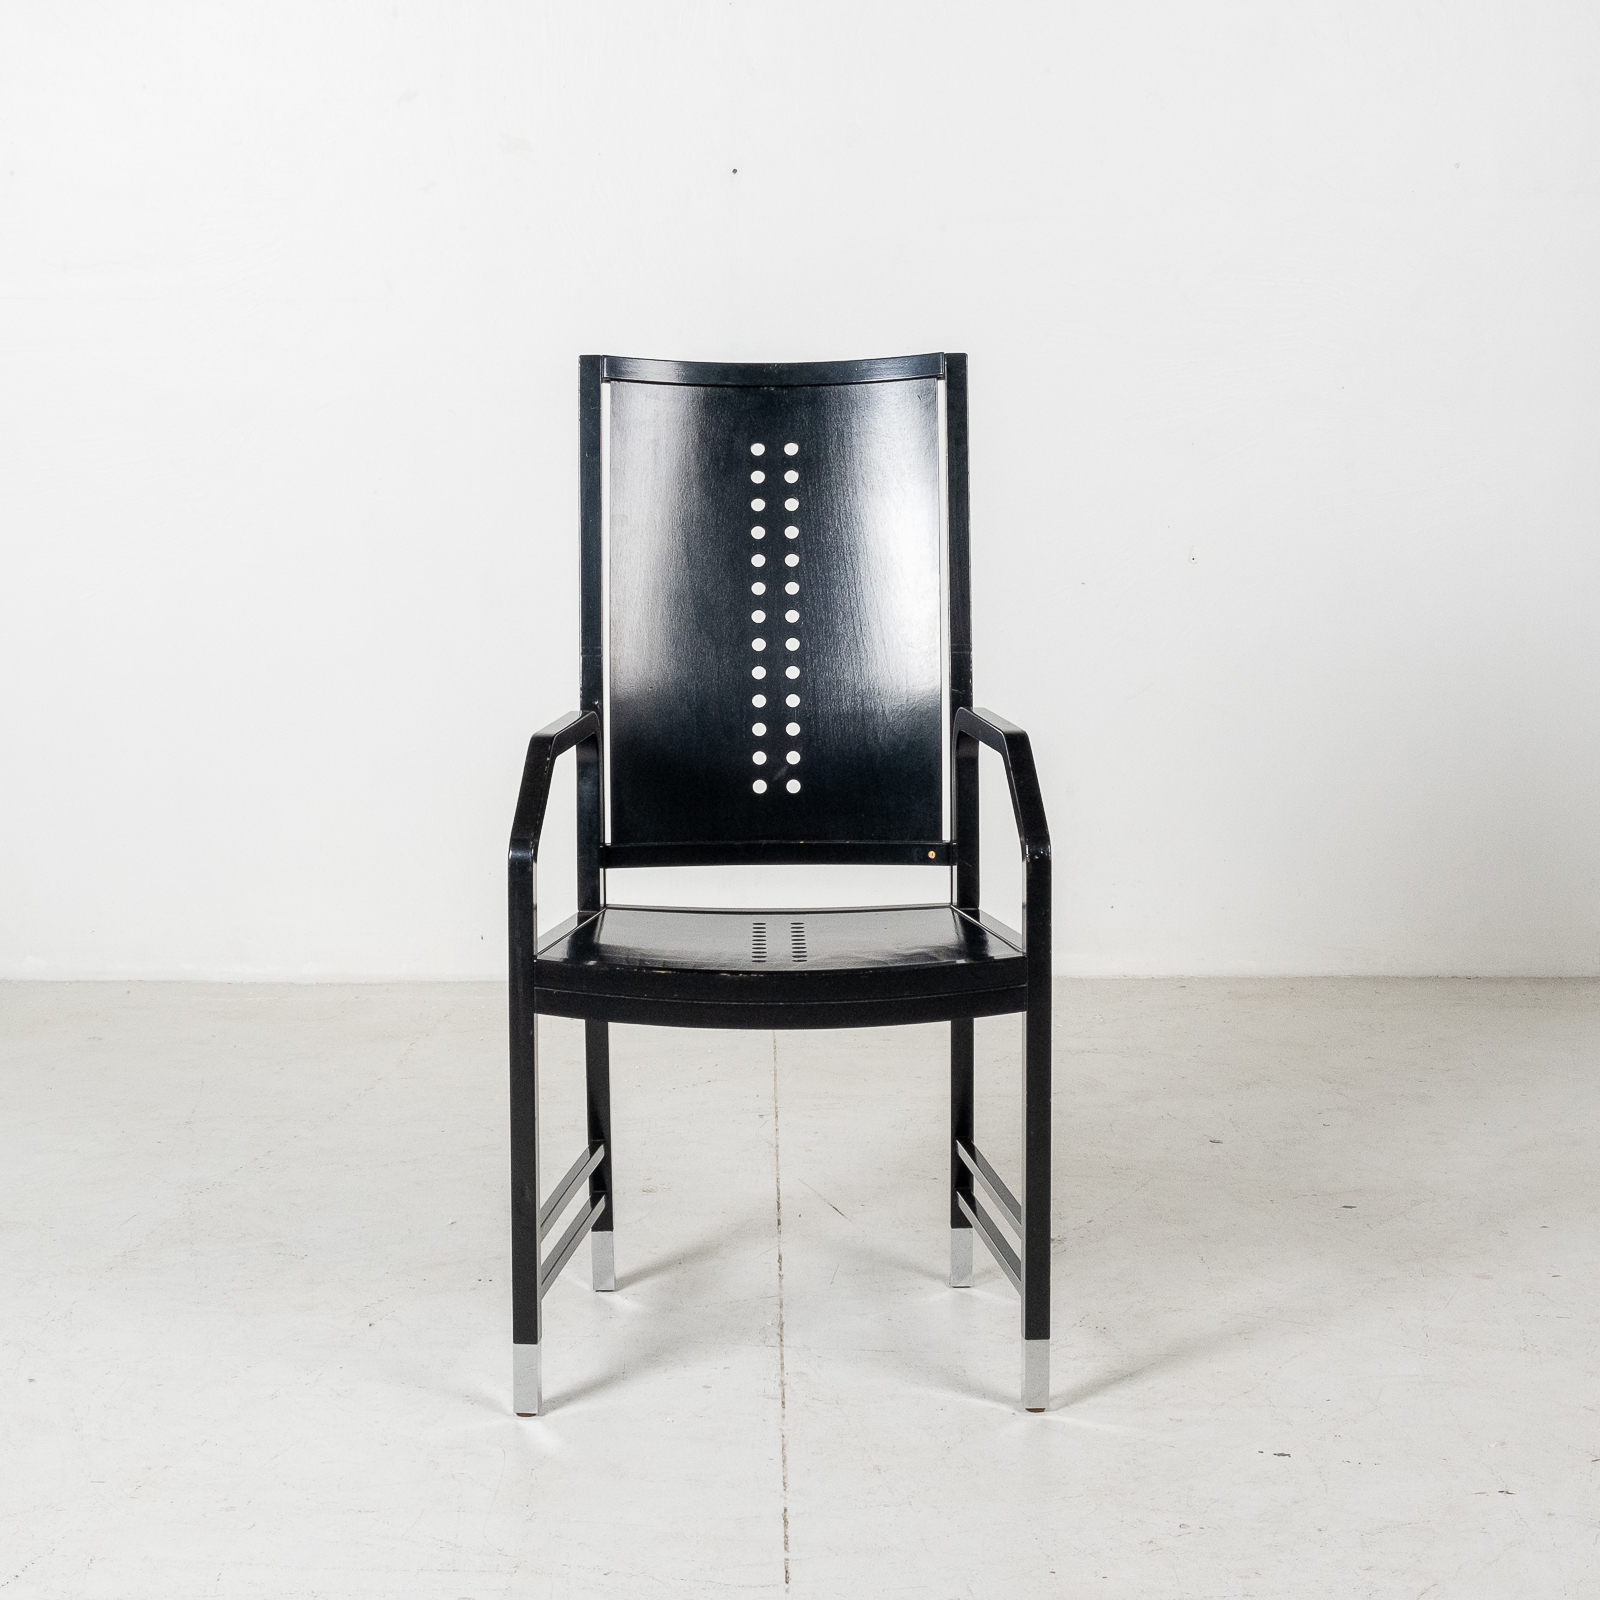 Thonet Chair In Black Hoffmann Style, 1980s, Germany07